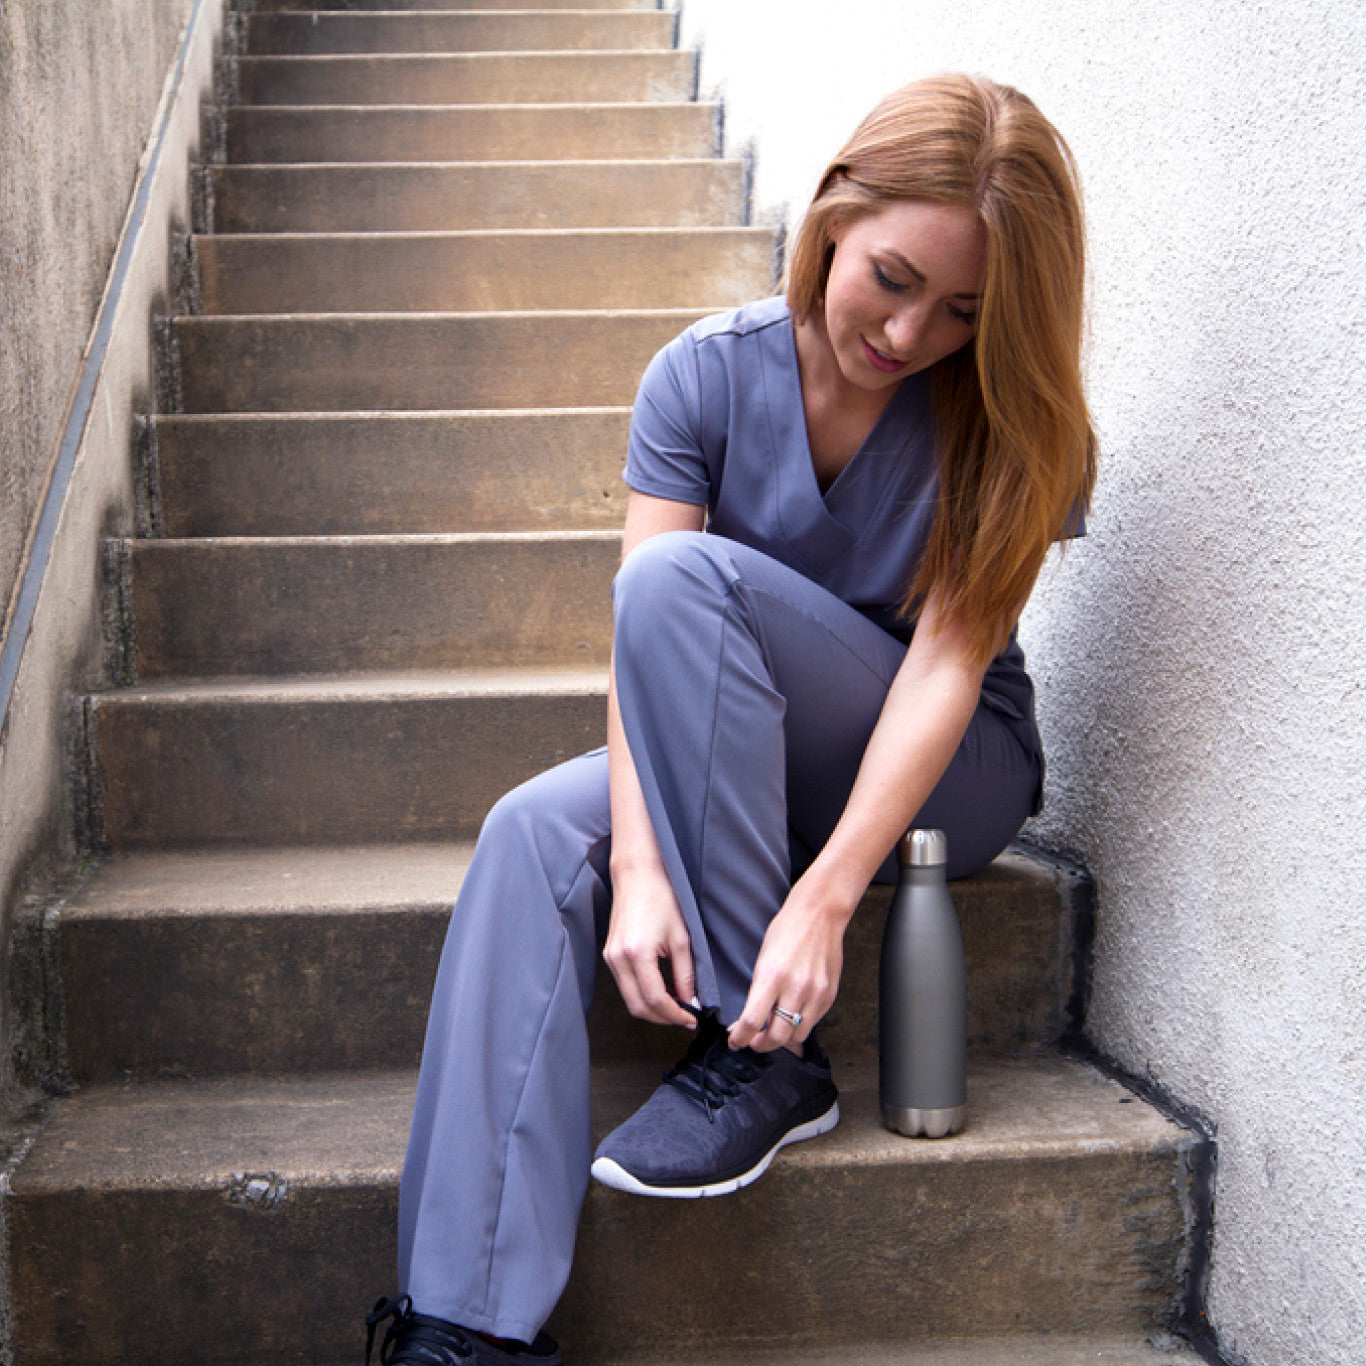 The 4 Best Shoes to Wear in Every Medical Environment